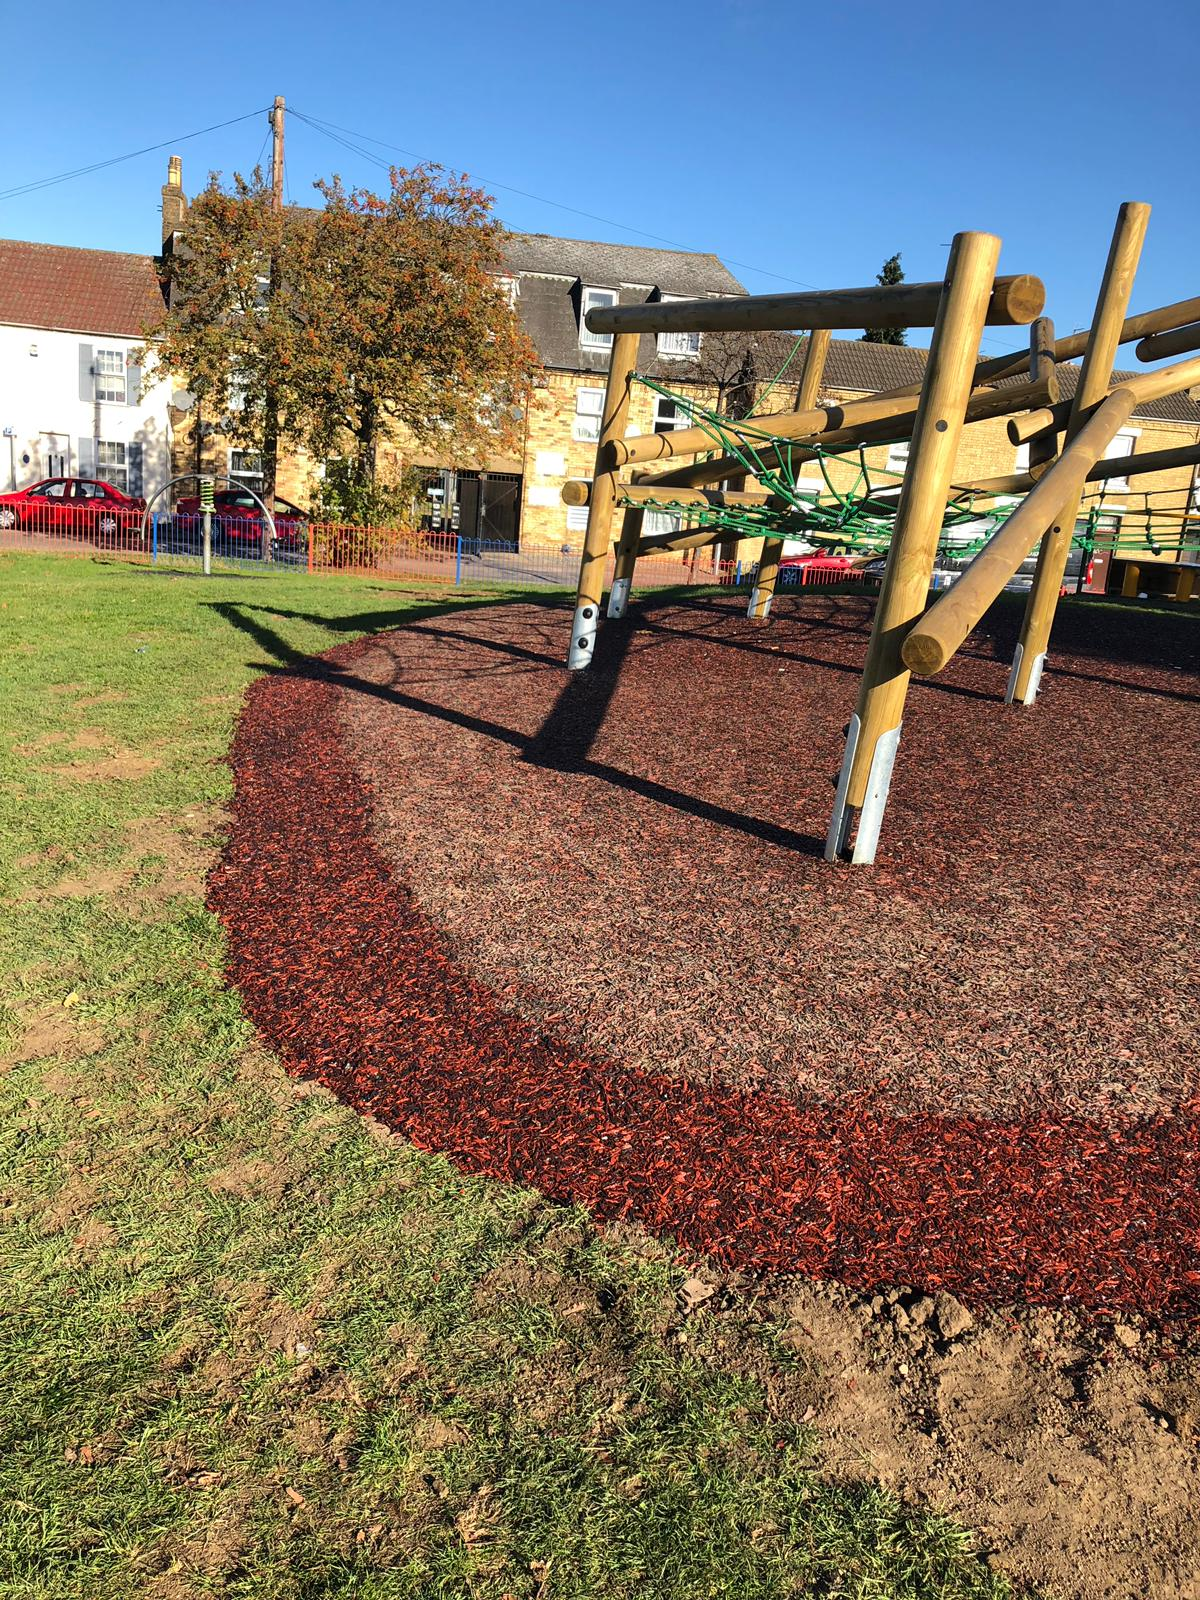 rubber mulch with wooden play equipment